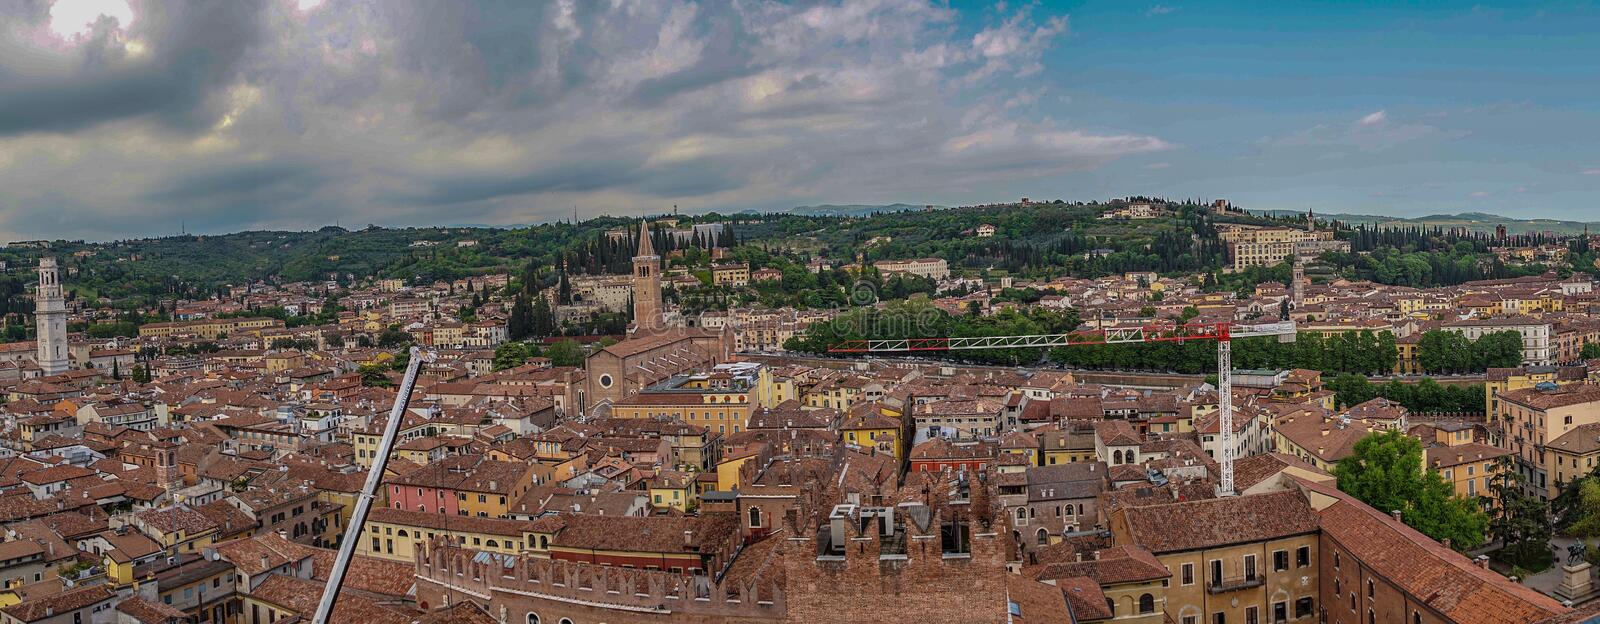 Beautifull aerial view of city Verona with red roofs, Italy stock photo